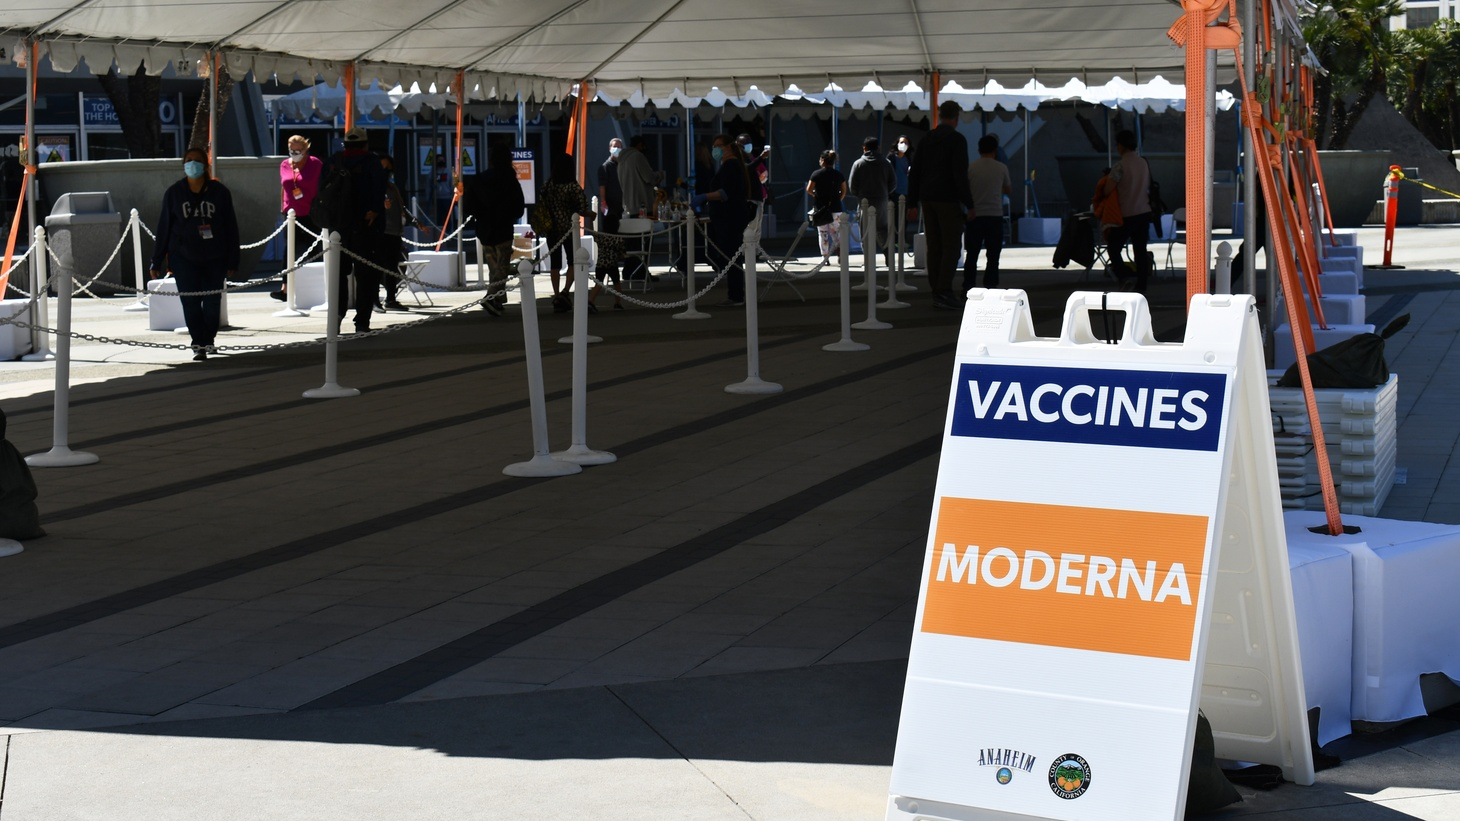 The Moderna vaccine is being distributed at the Anaheim Convention Center COVID-19 vaccination site, March 19, 2021. Photo by Laura Kondourajian.